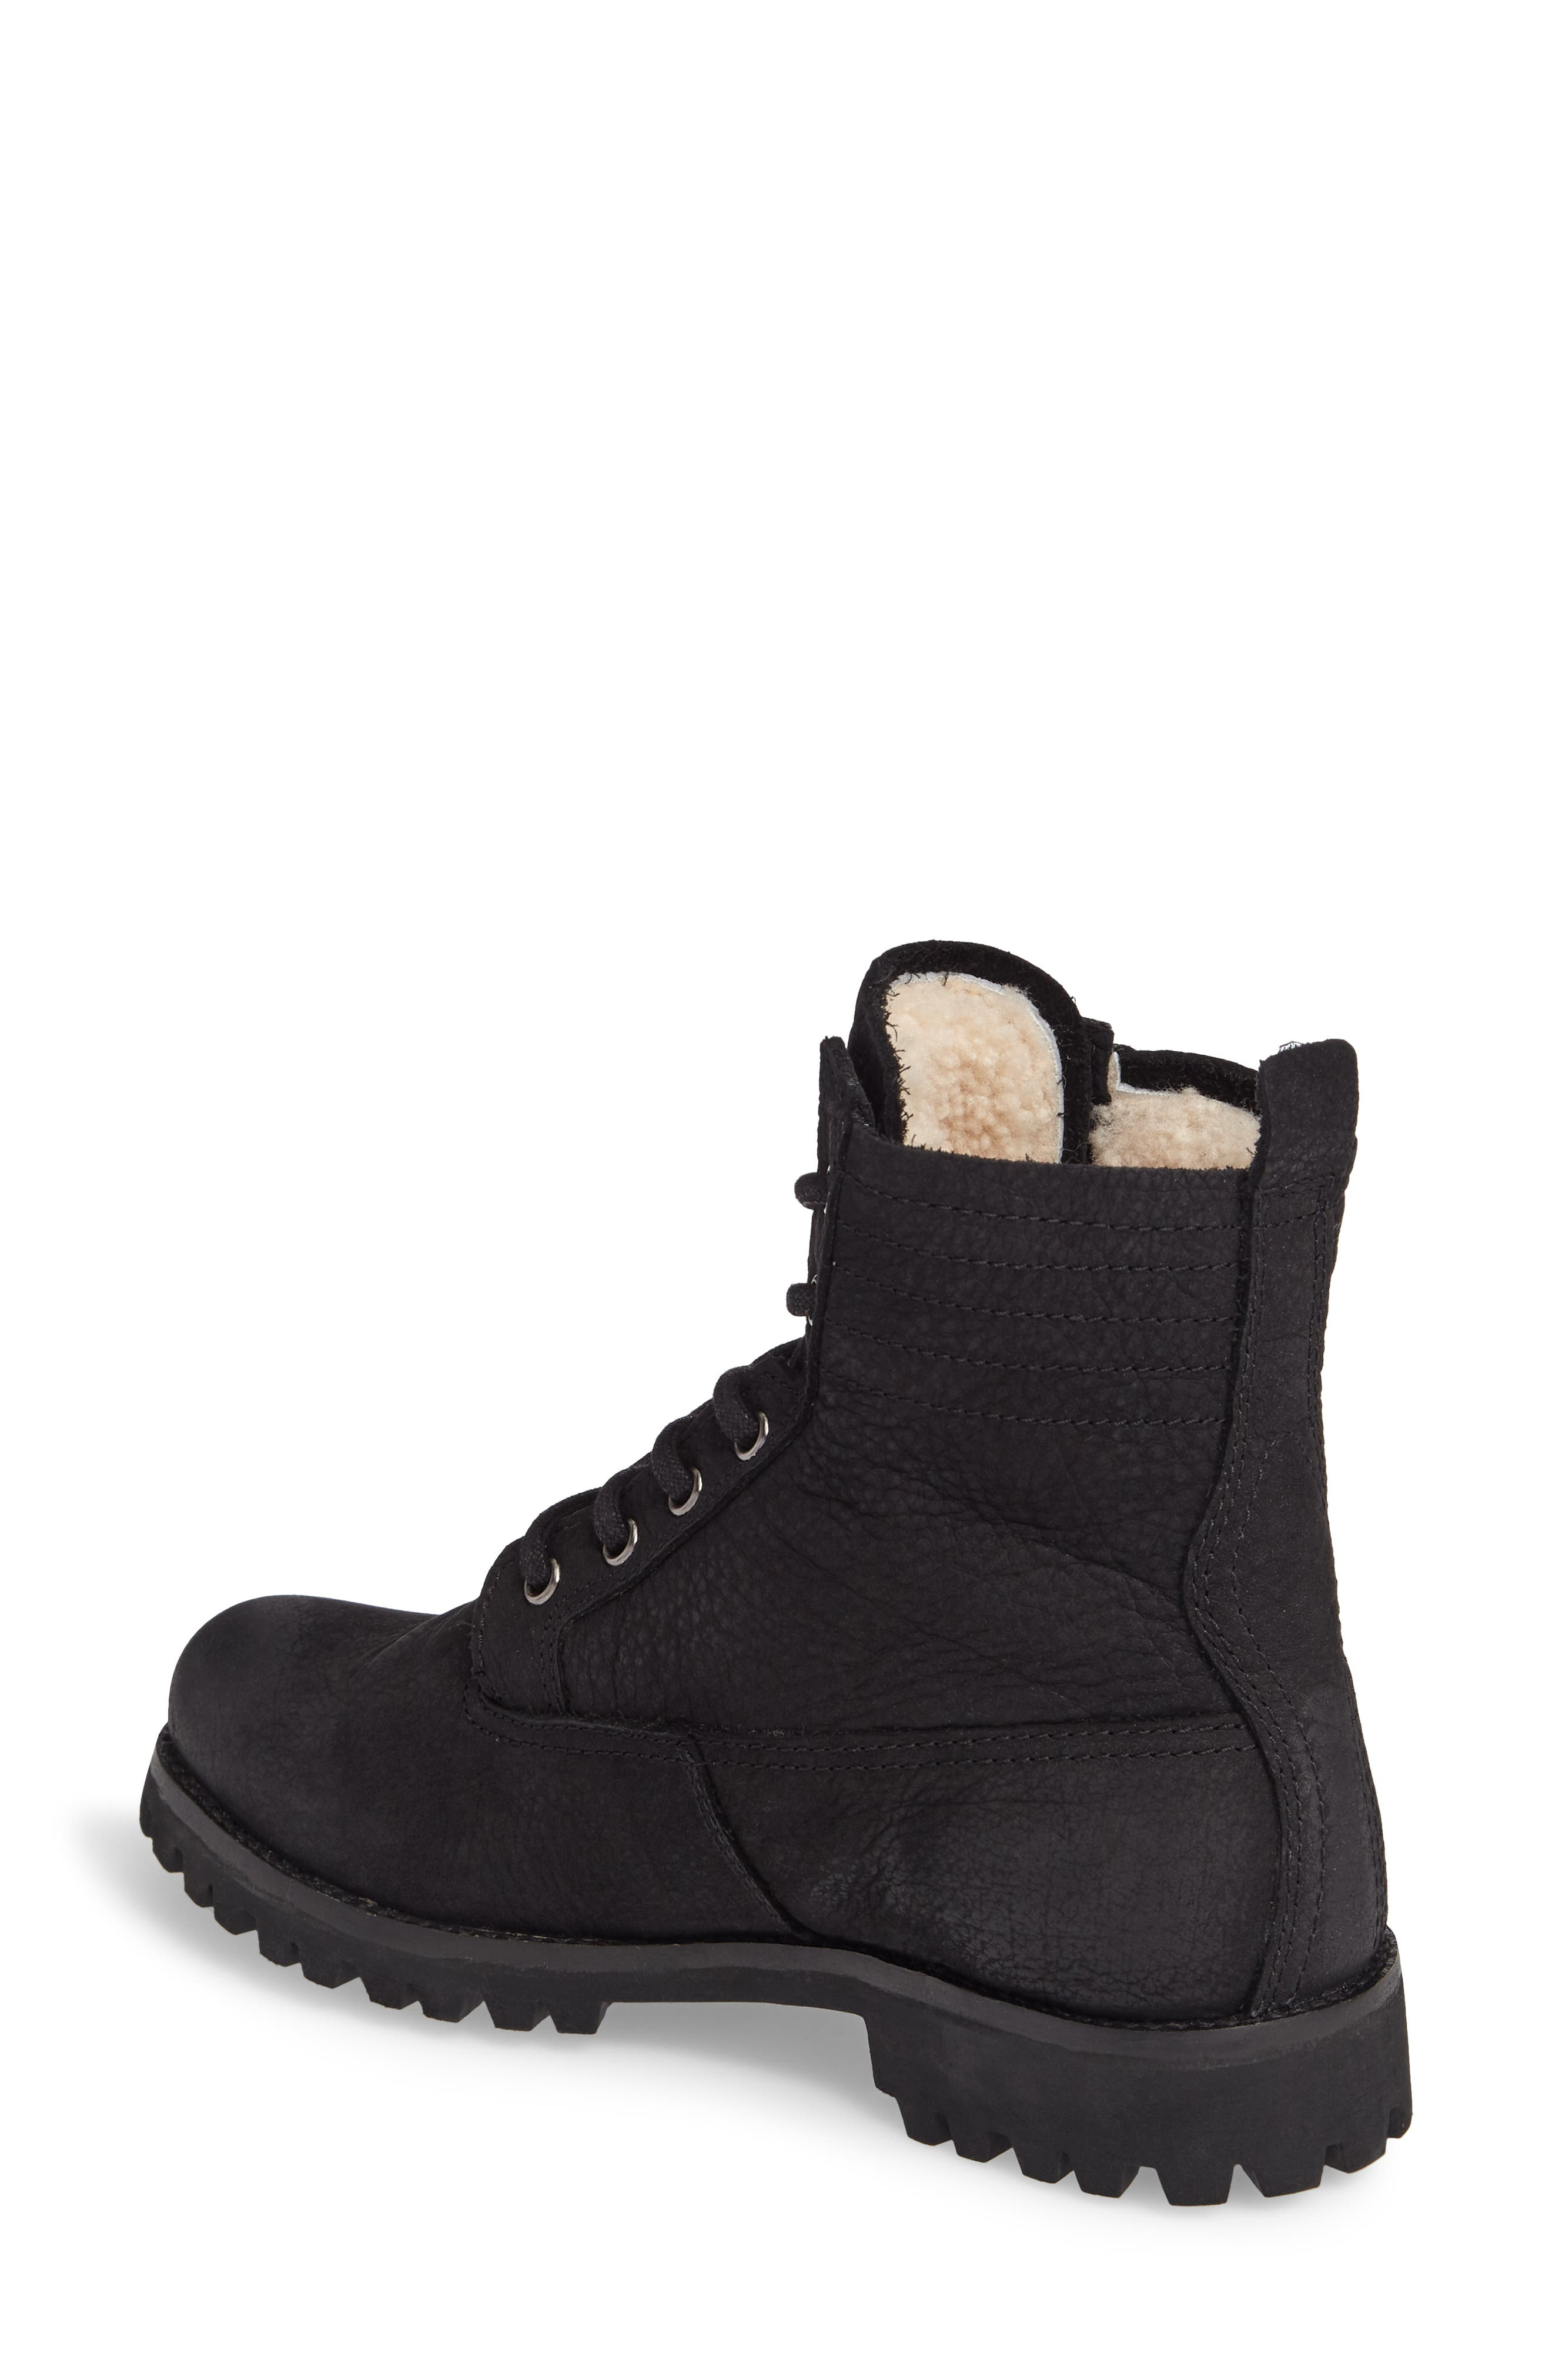 OL22 Lace-Up Boot with Genuine Shearling Lining,                             Alternate thumbnail 2, color,                             Black Leather